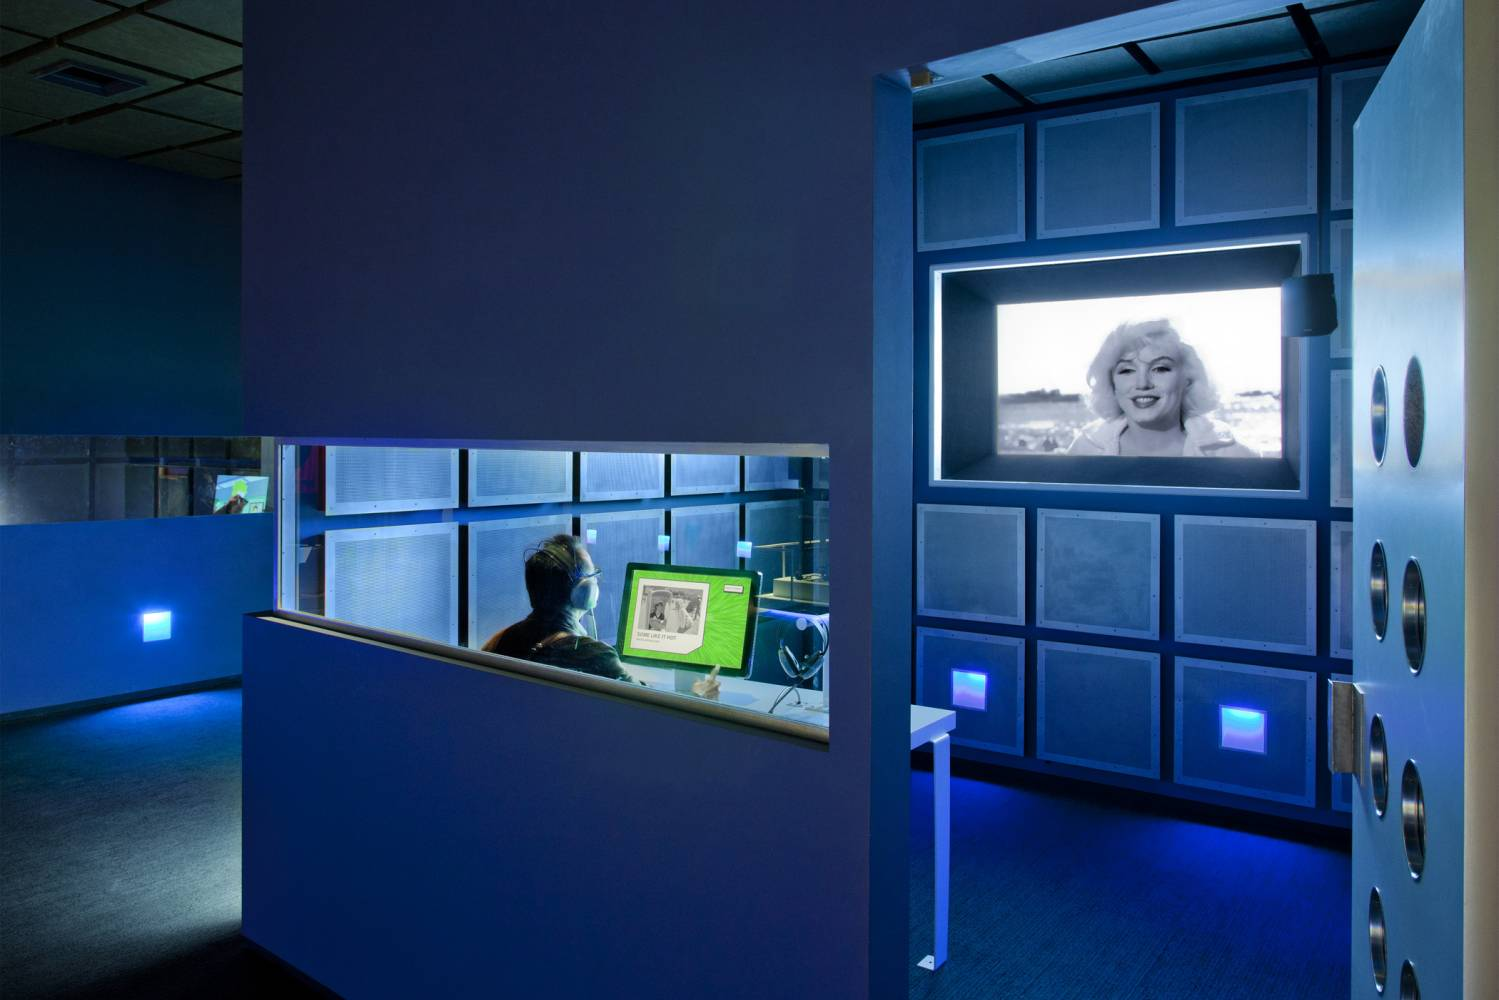 National Museum of the American Indian New York City, Museum of the Moving Image: Film Comes Alive in New York